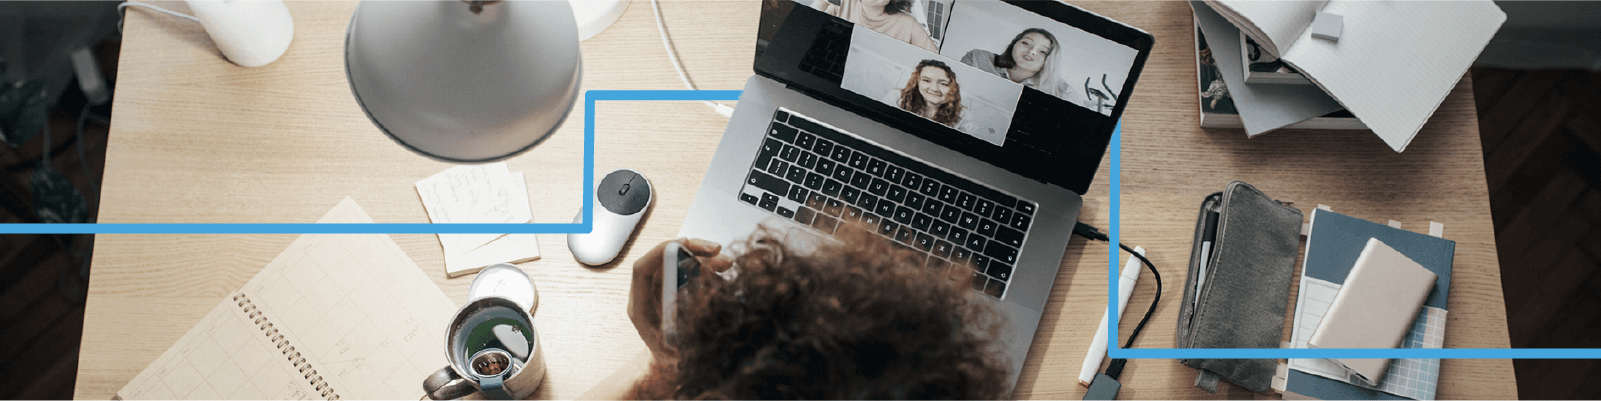 Connect People with Meetings that Matter